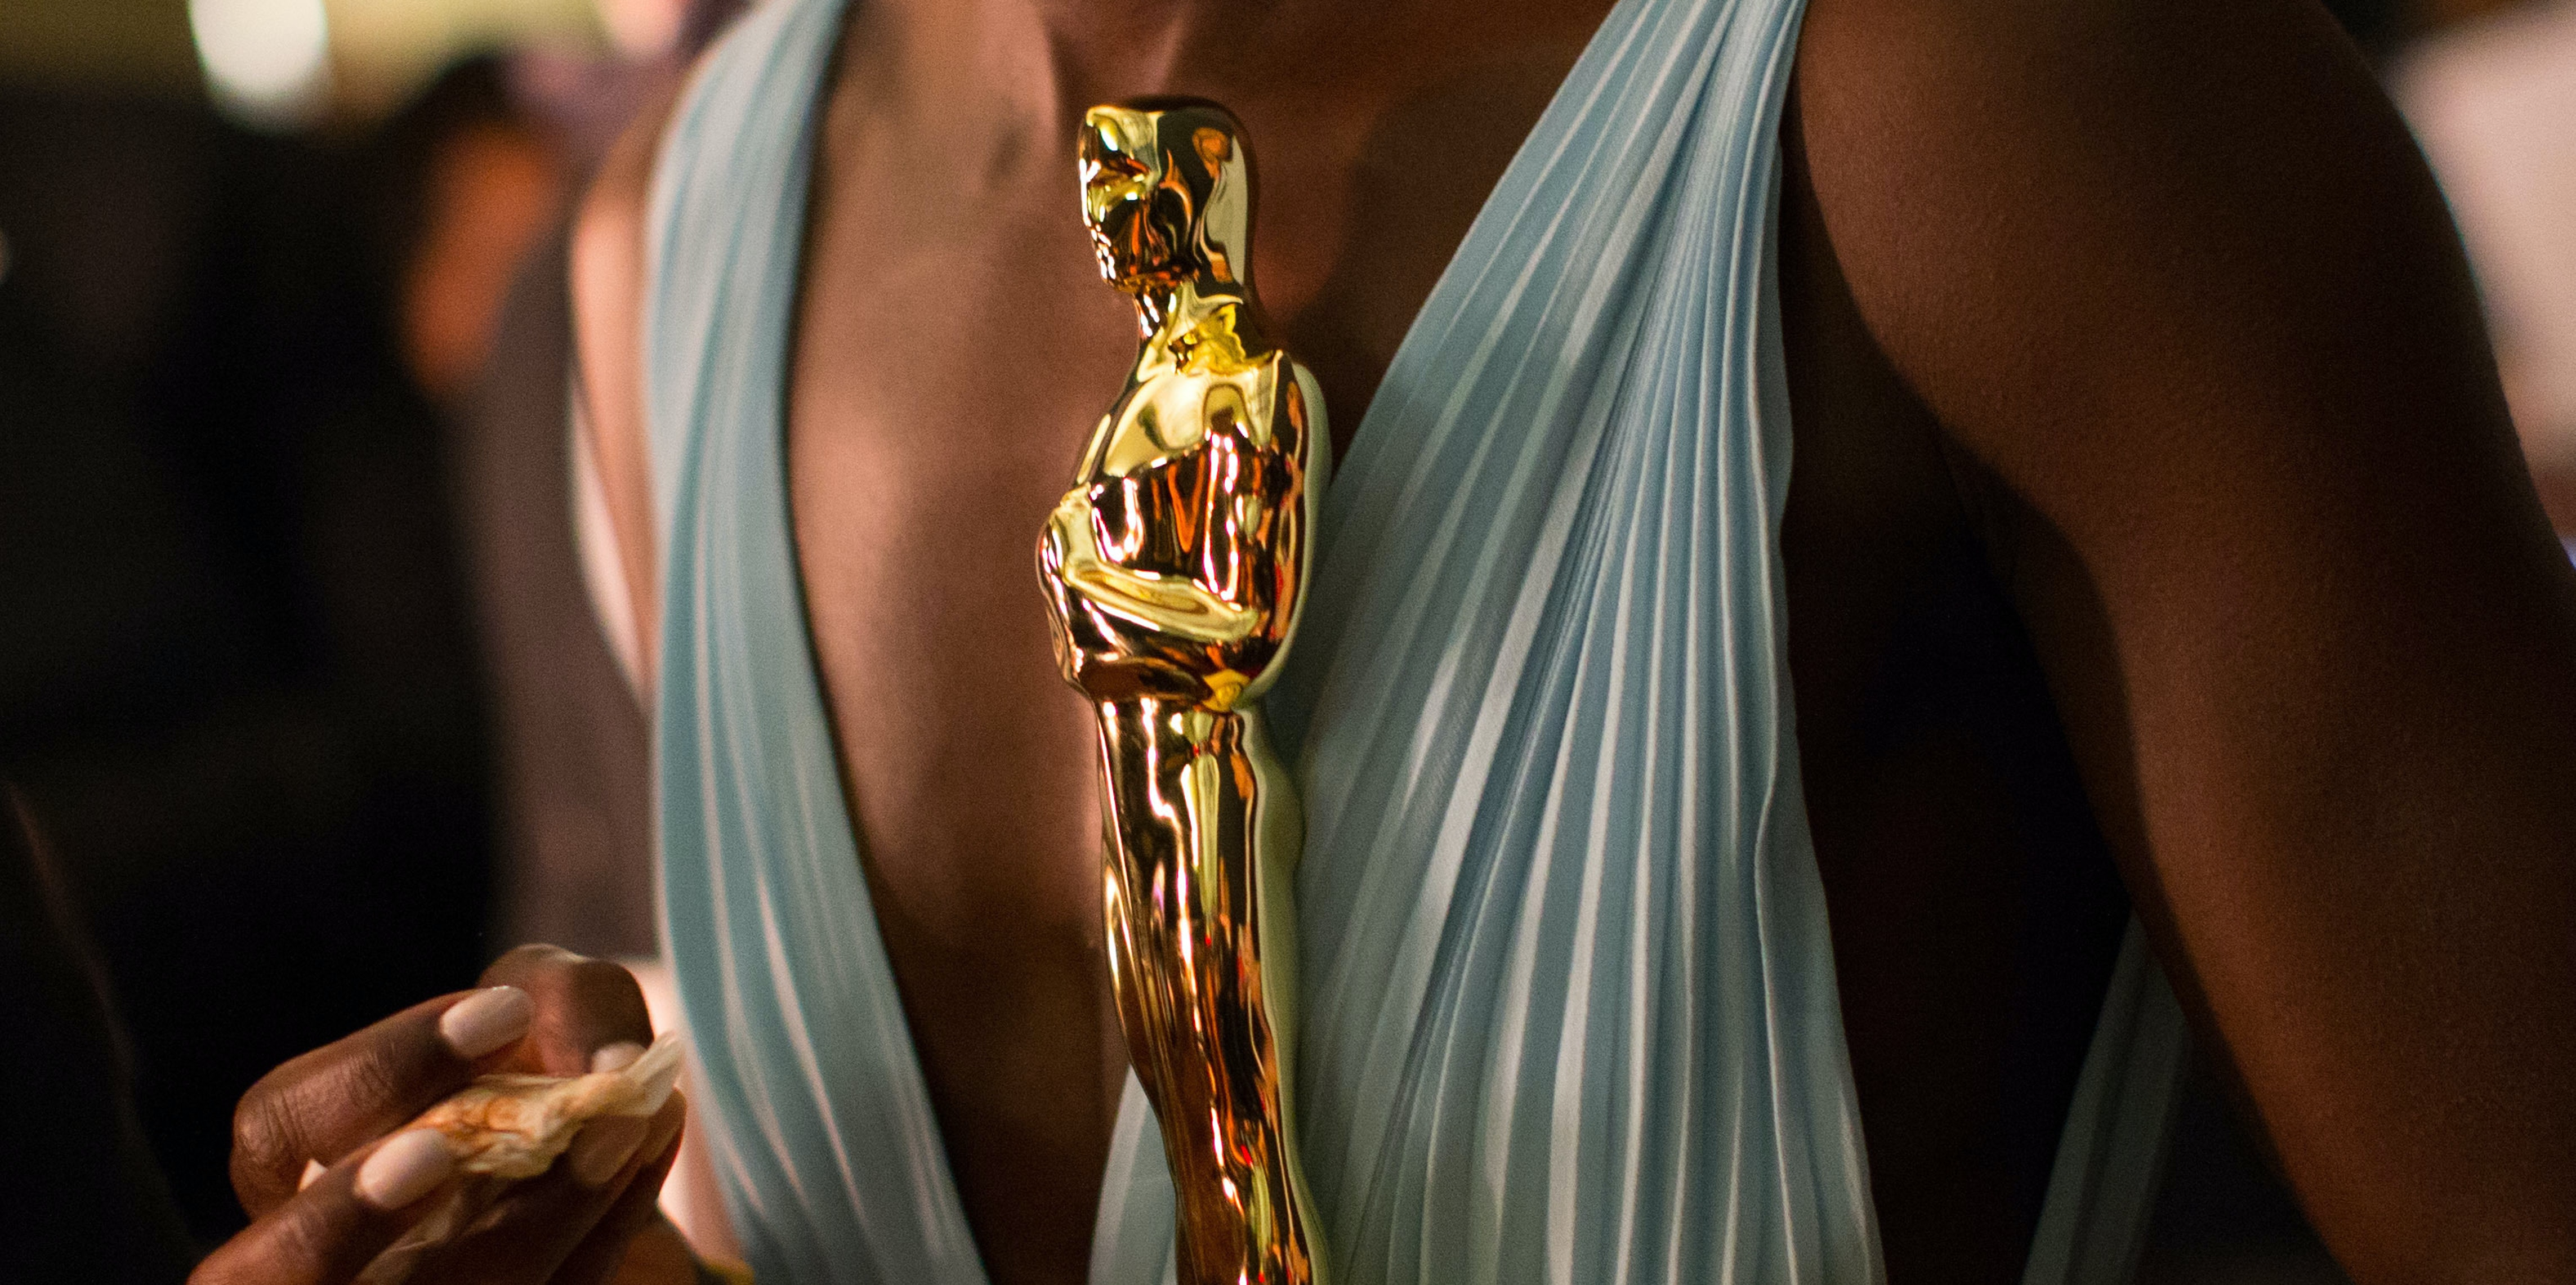 HOLLYWOOD, CA - MARCH 02: Actress Lupita Nyong'o, winner of Best Performance by an Actress in a Supporting Role backstage during the Oscars held at Dolby Theatre on March 2, 2014 in Hollywood, California. (Photo by Christopher Polk/Getty Images)